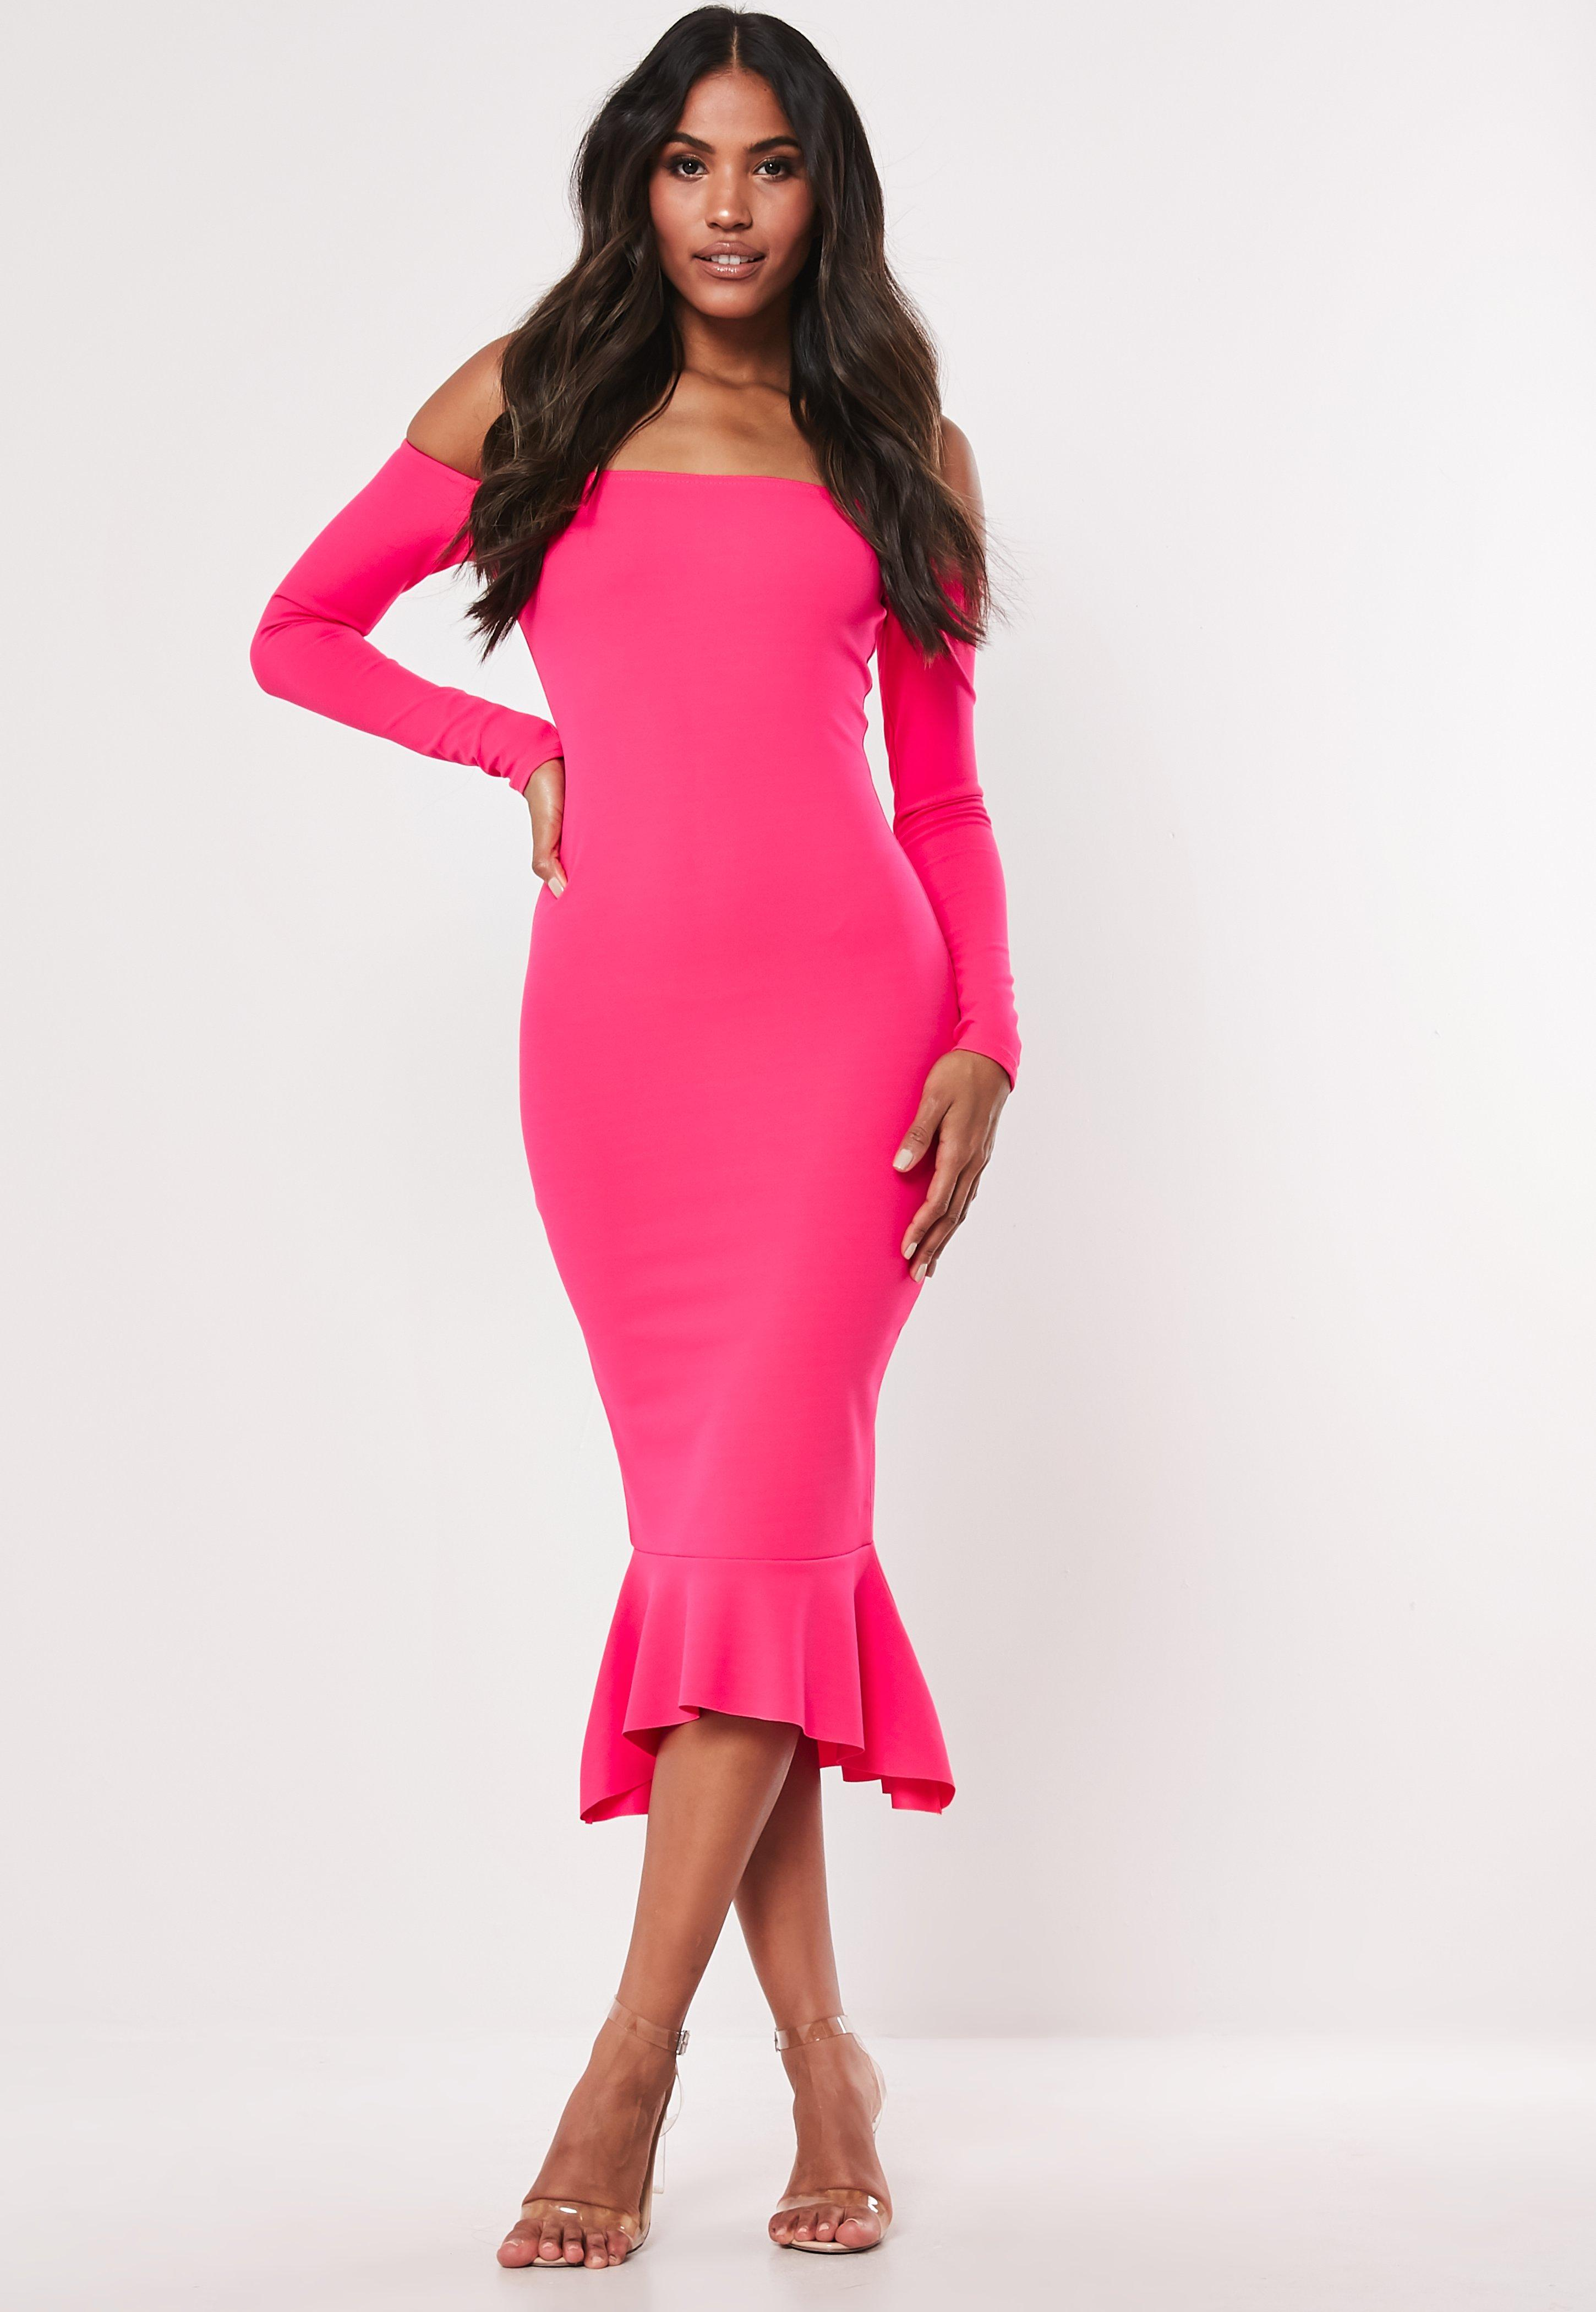 e9a3dbcb358 Bodycon Dresses